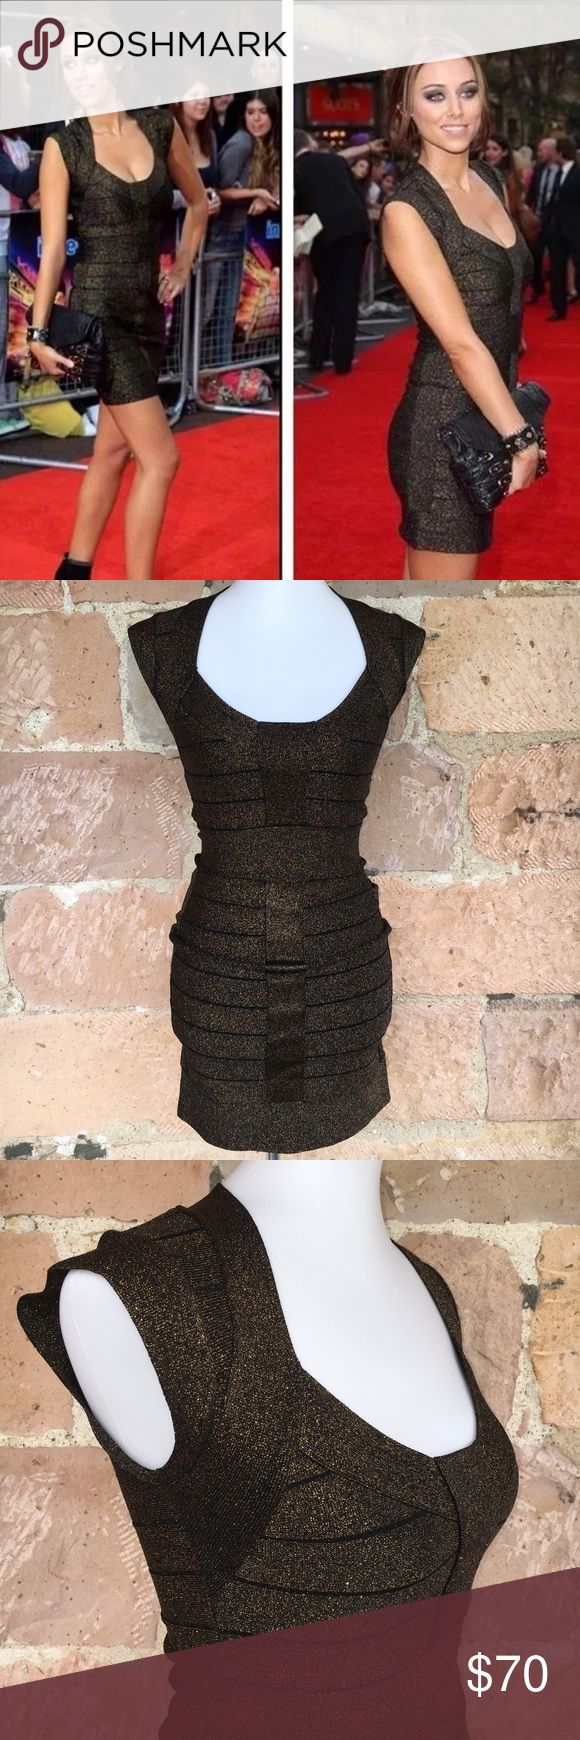 French connection body con bandage dress metallic Women's size 4 black and metallic gold bandage dress. Made extremely well. As seen on the red carpet. Never worn French Connection Dresses Mini